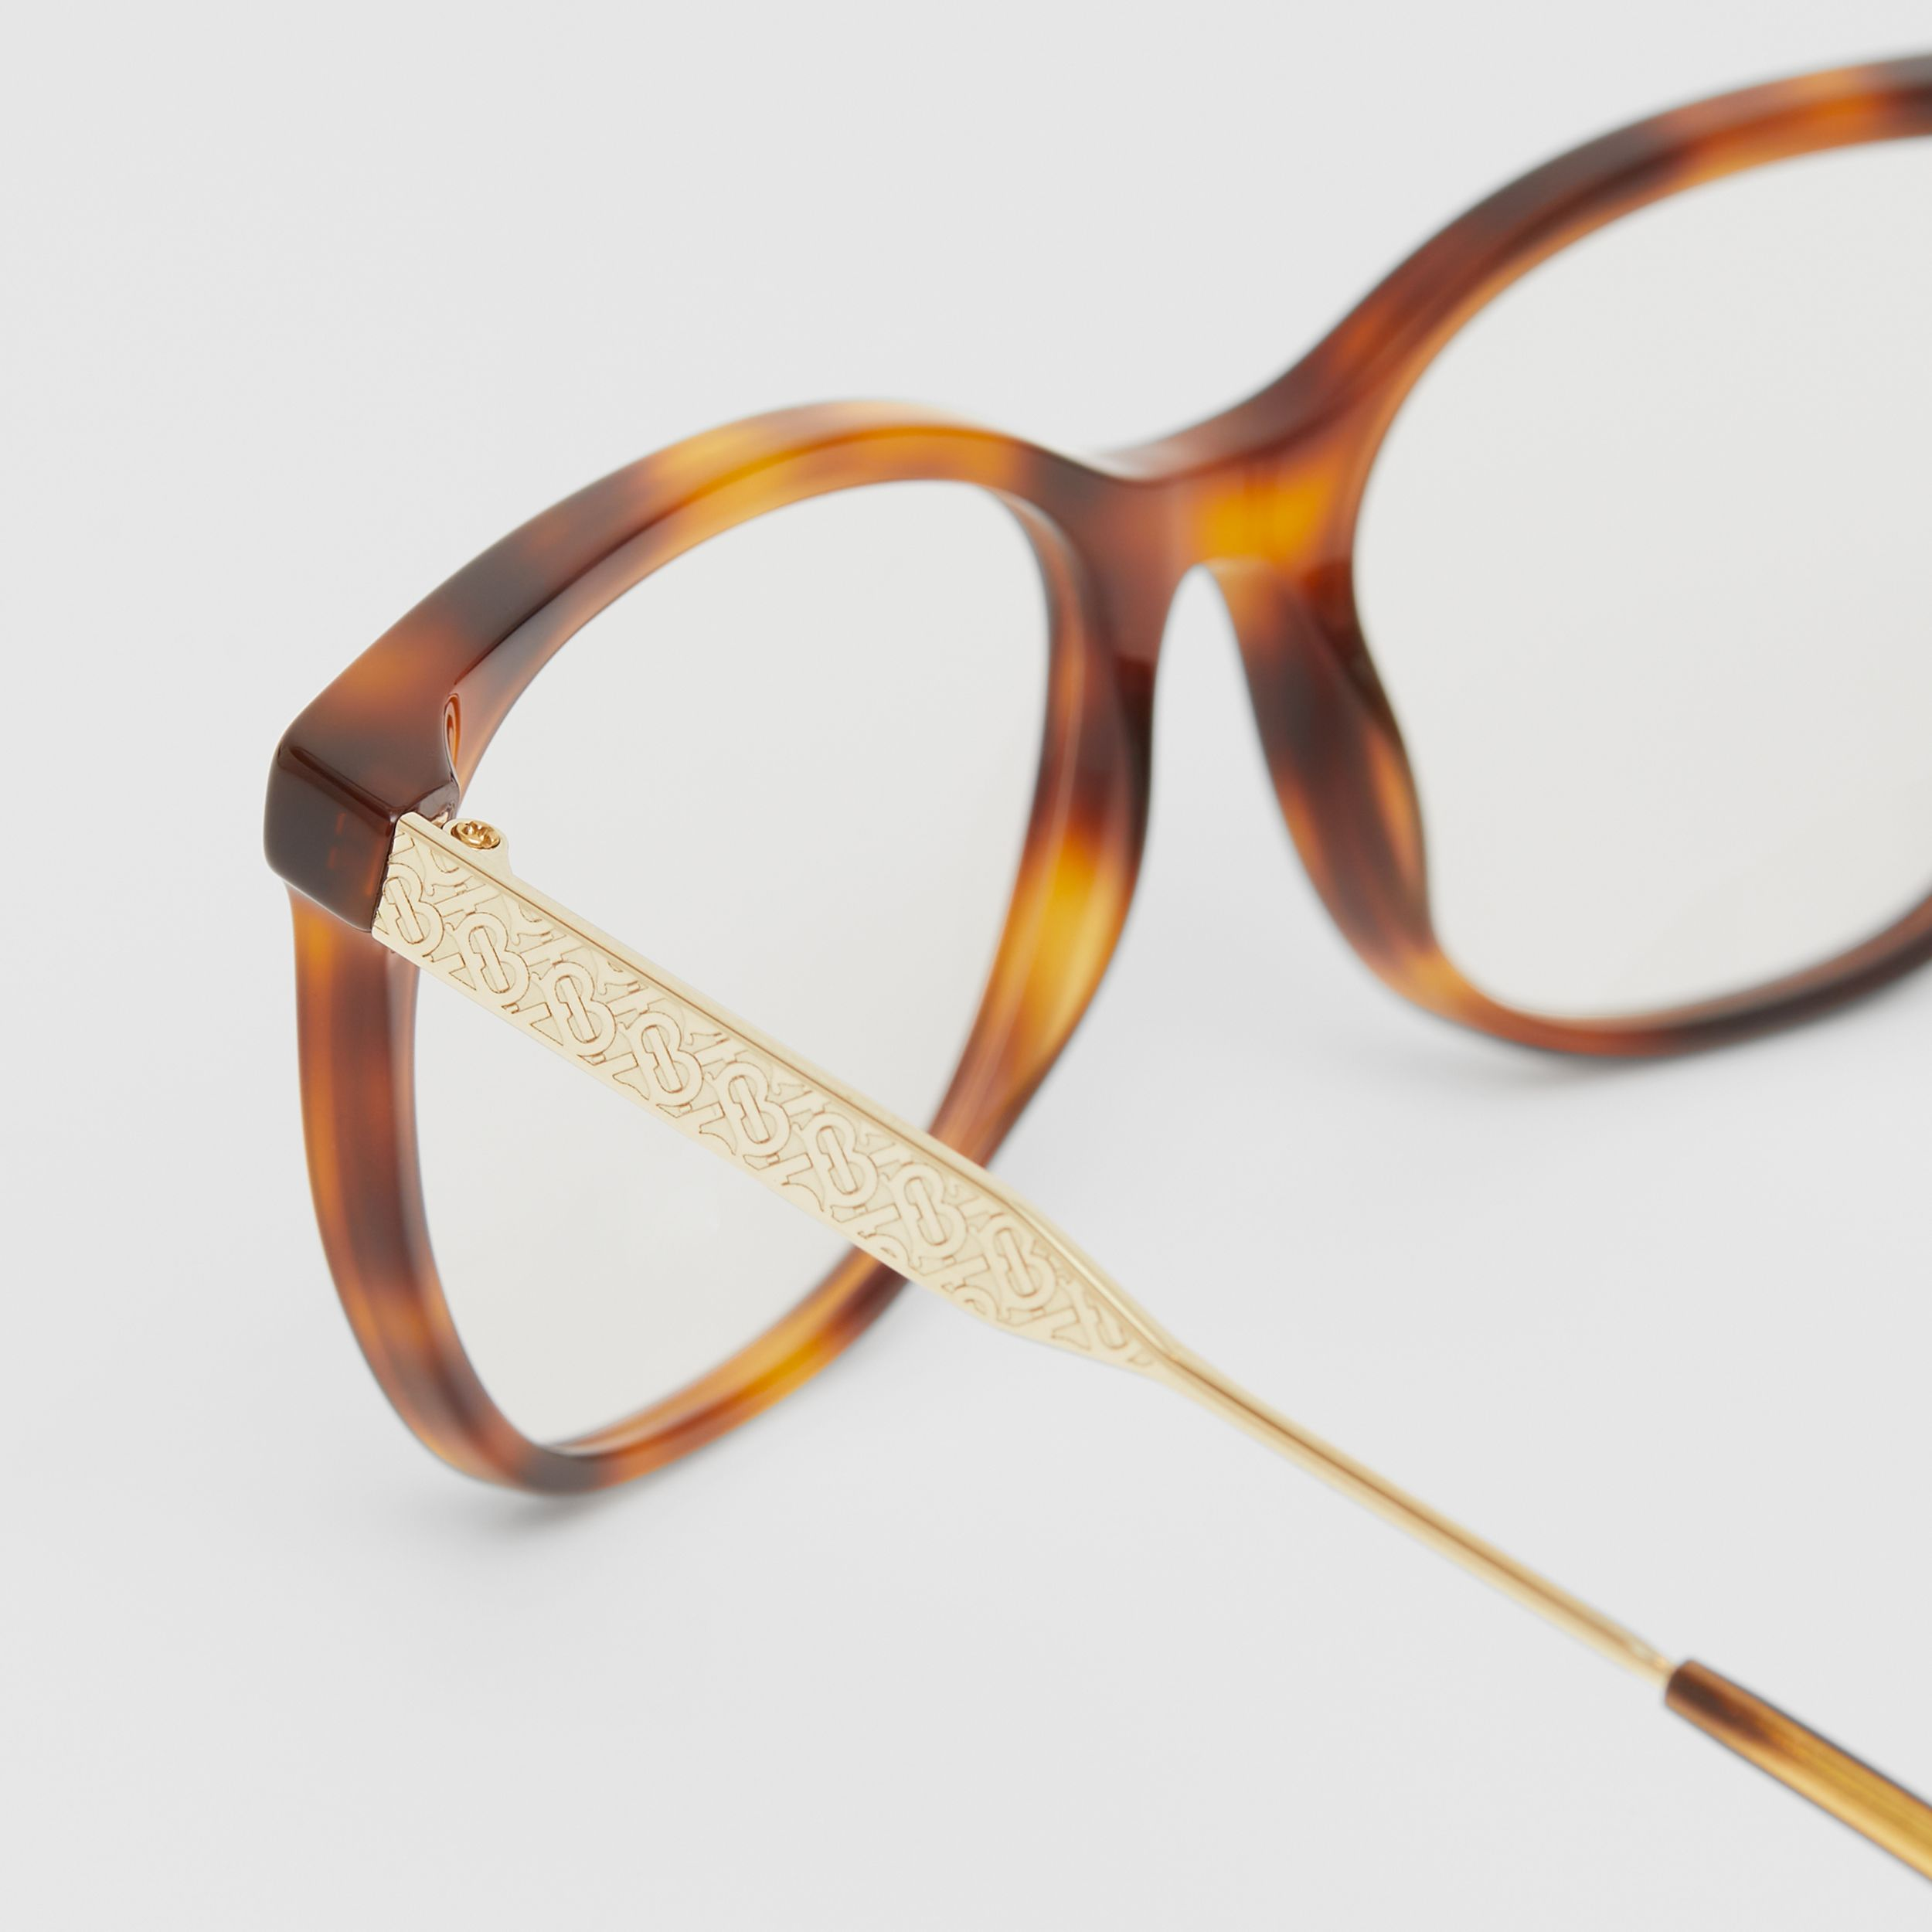 Cat-eye Optical Frames in Dark Amber Tortoiseshell - Women | Burberry - 2